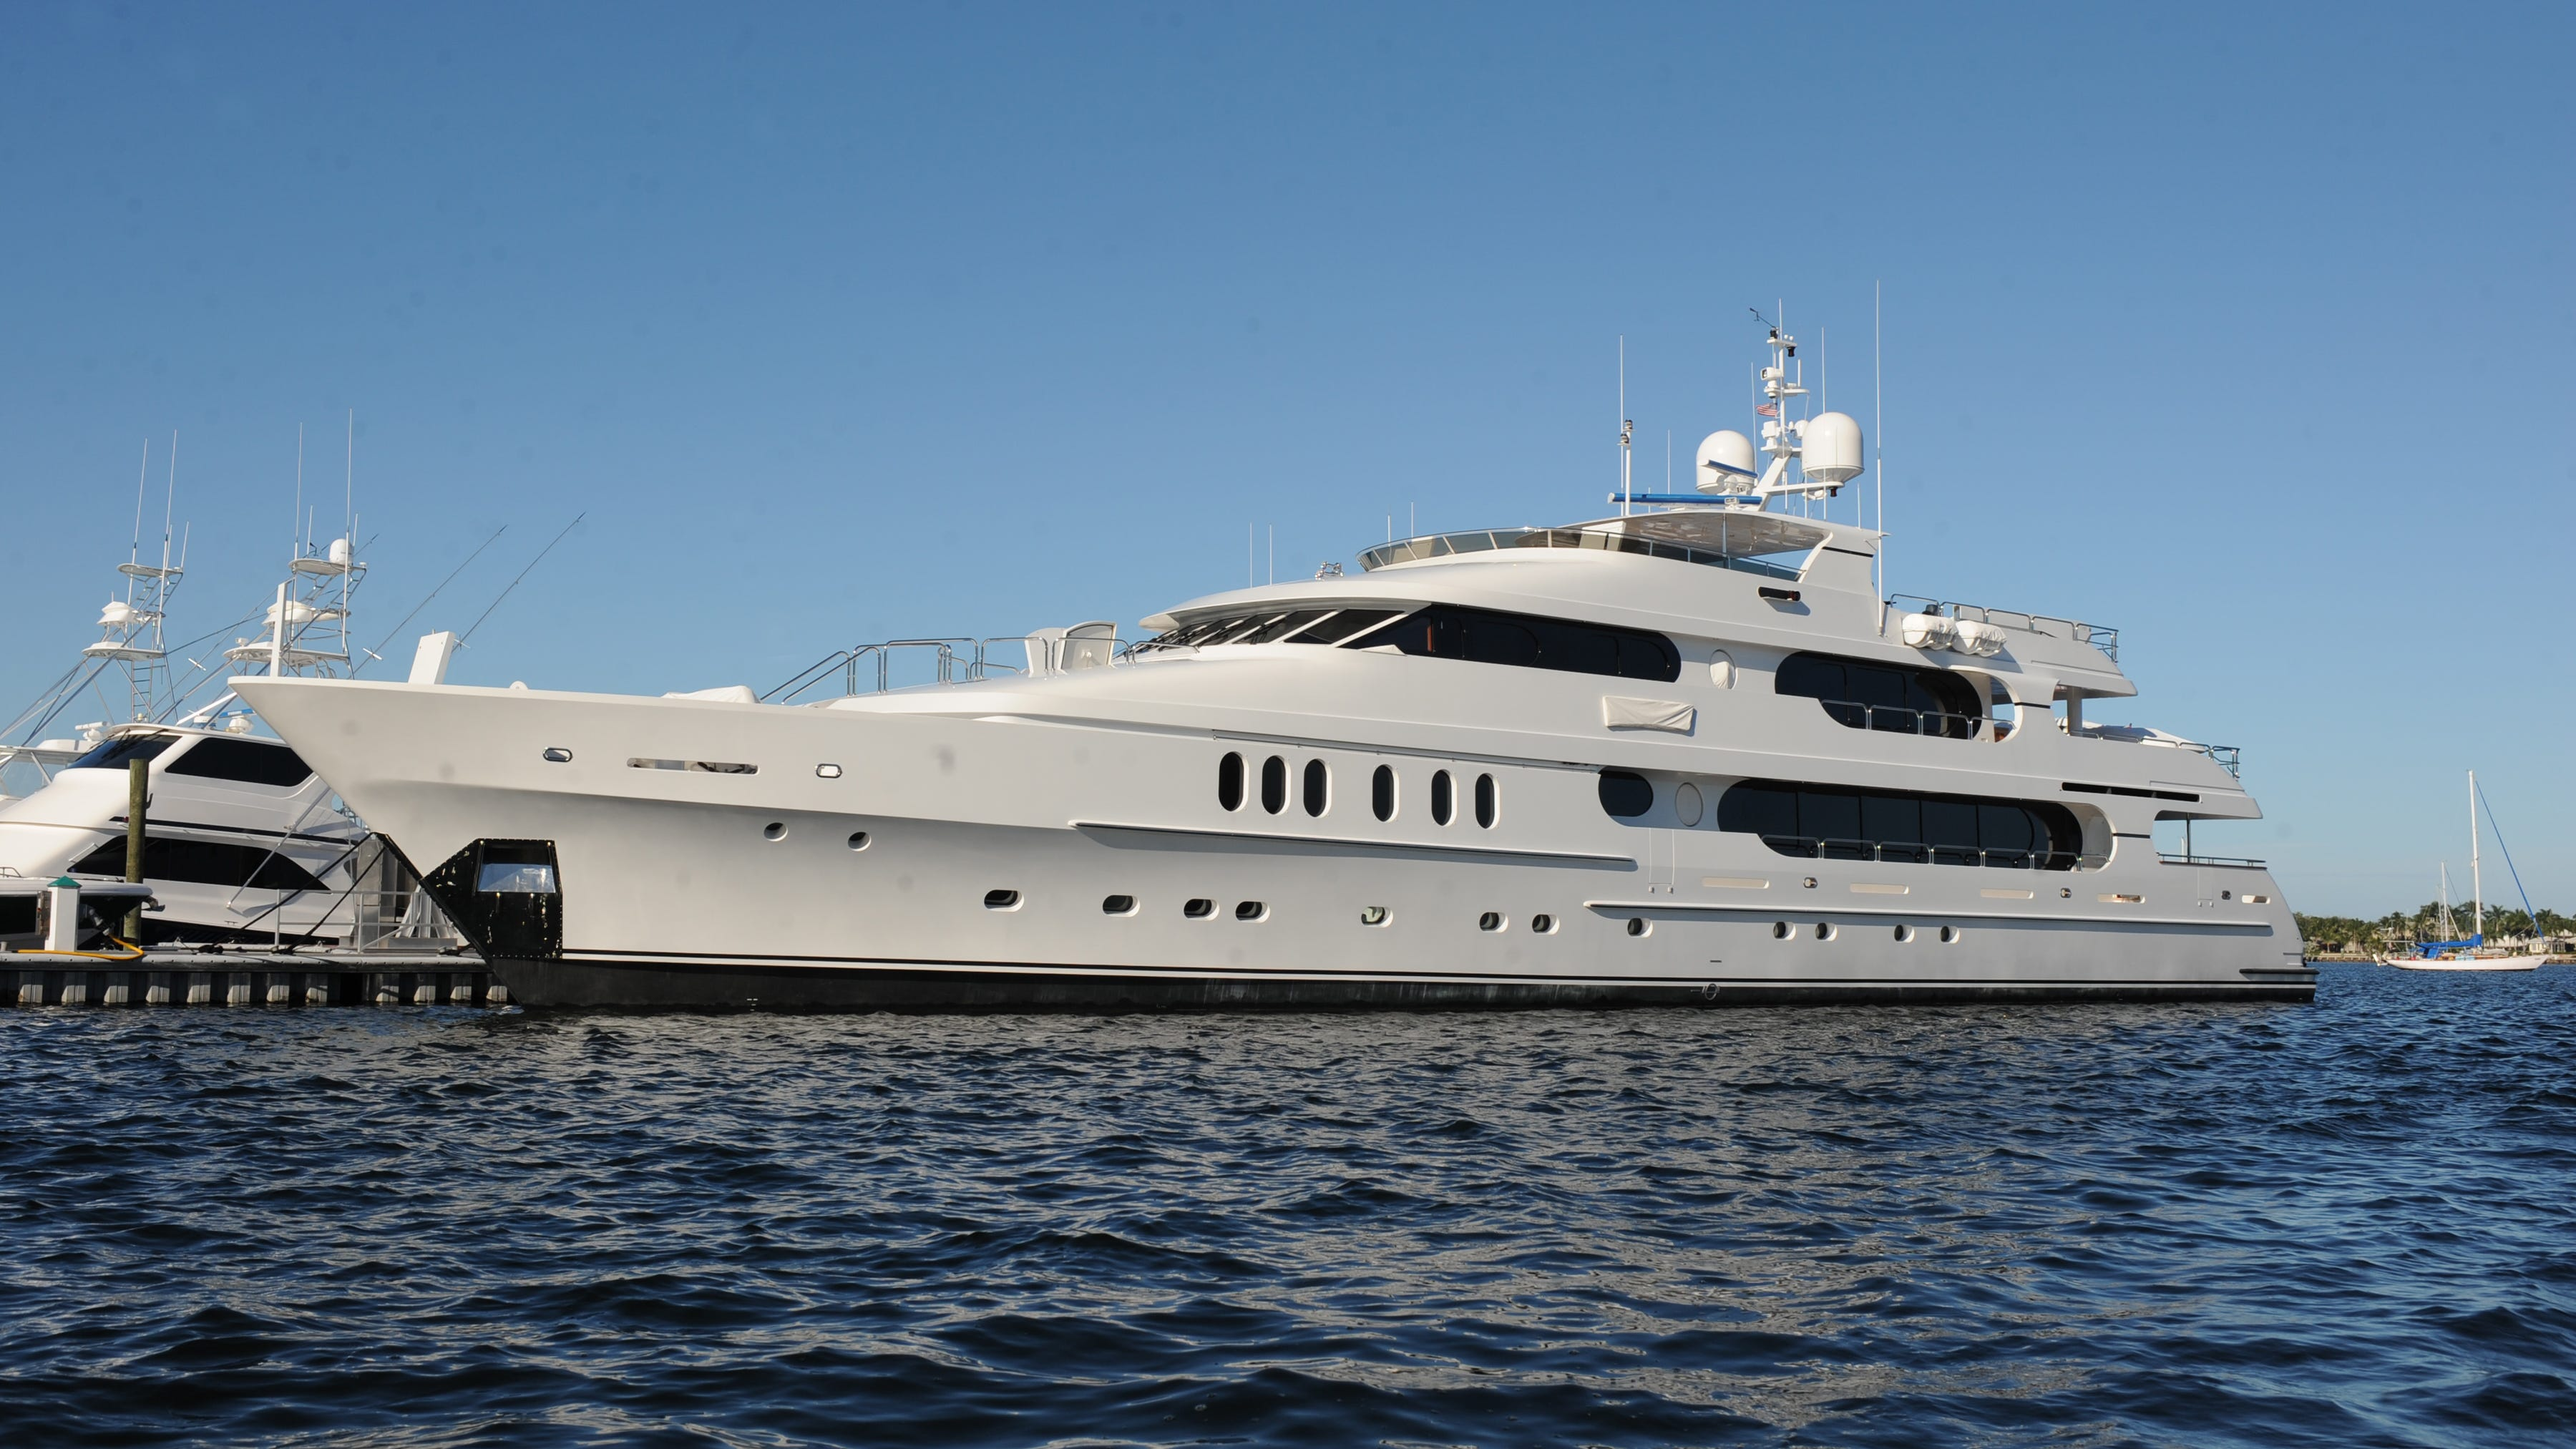 tiger woods  luxury yacht privacy smaller than others at